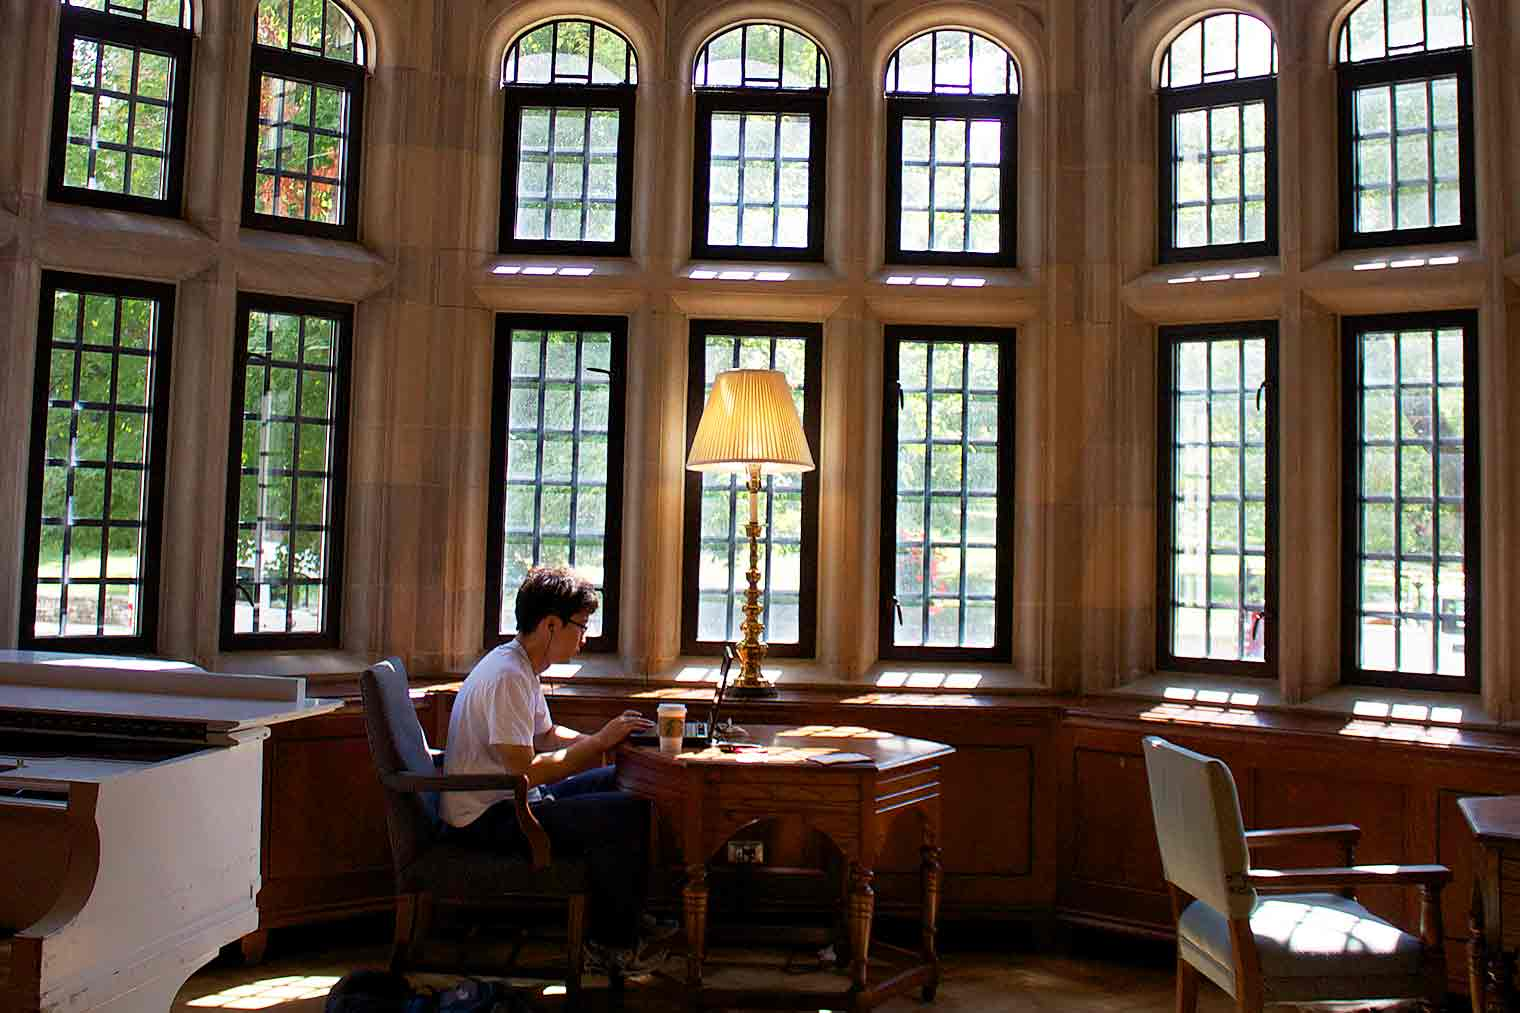 A student studies in the IMU